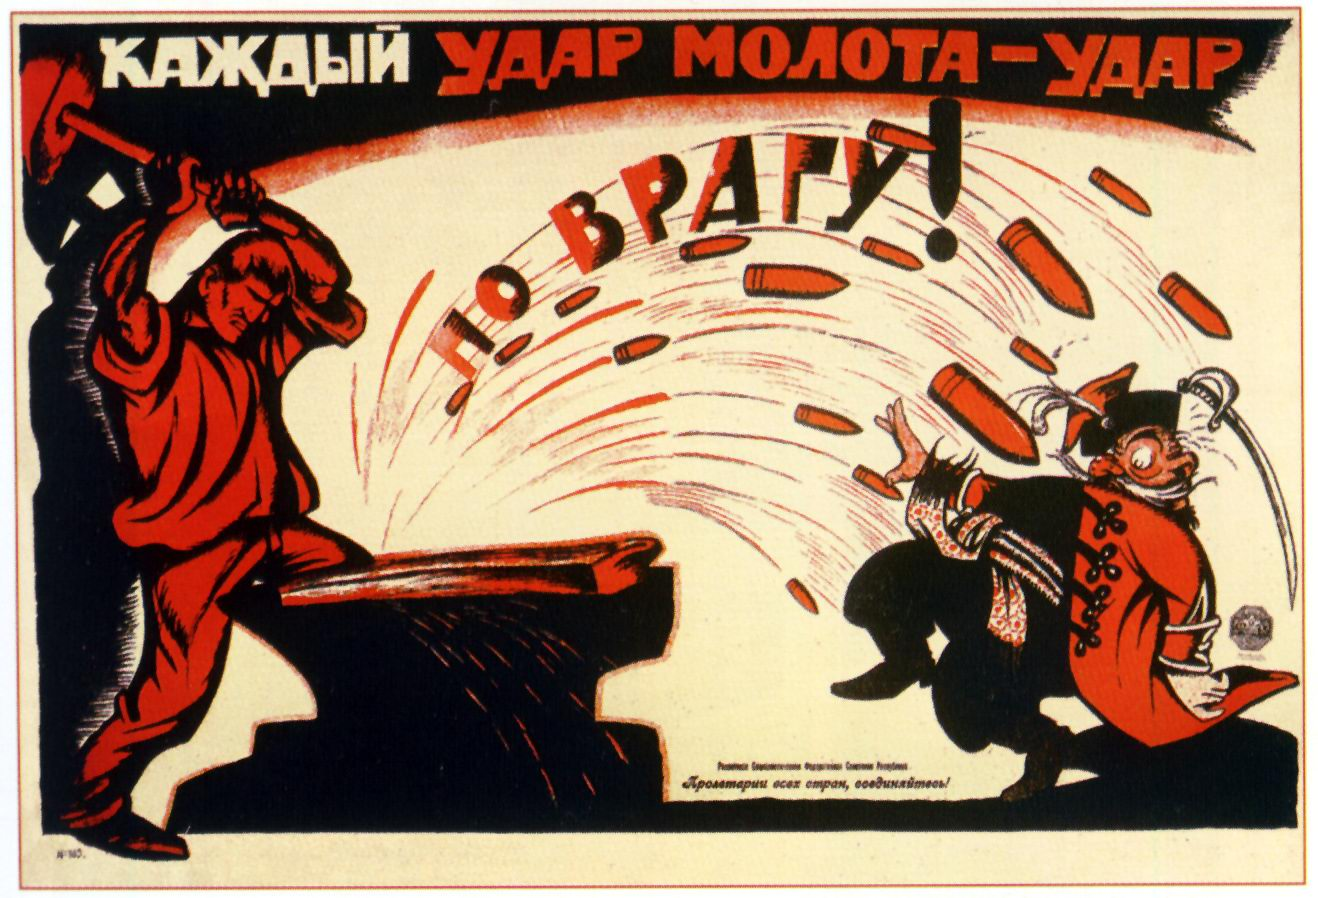 industrialization in the soviet union In the soviet union around this time, the crackdown against bourgeois culture   less purchasing power than it had in 1928 – just before stalin's industrialization.